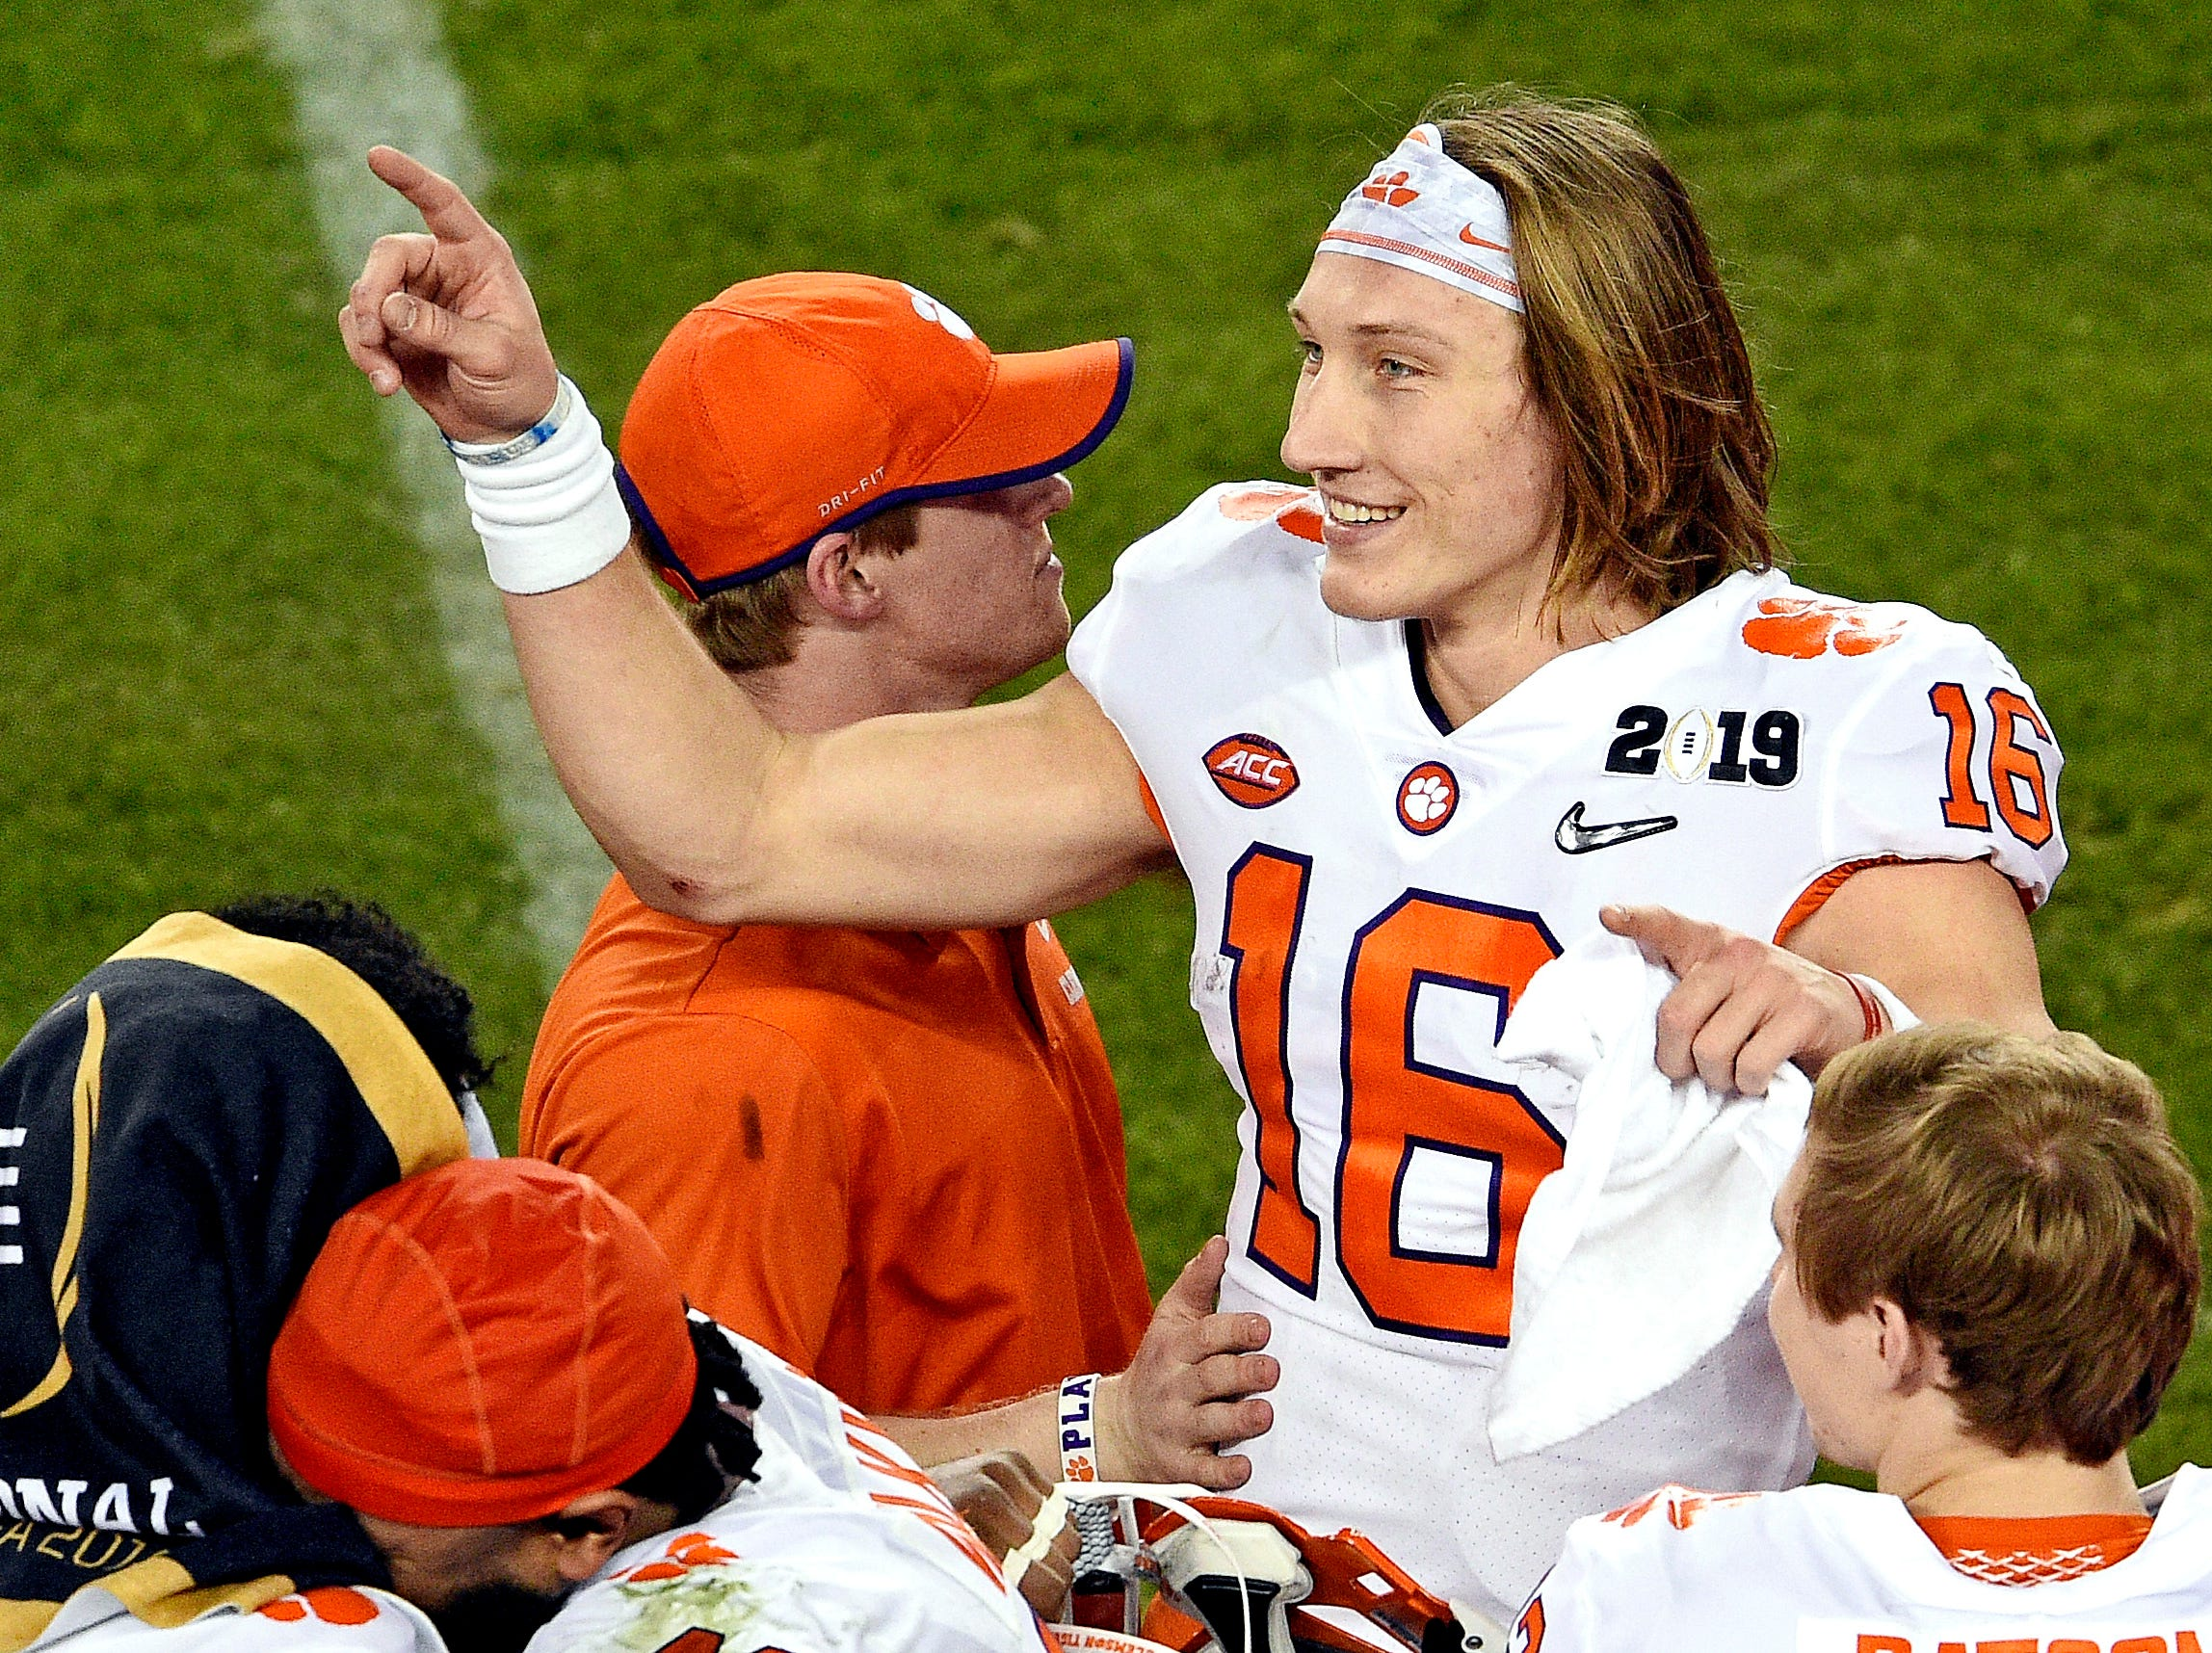 Jan 7, 2019; Santa Clara, CA, USA; Clemson Tigers quarterback Trevor Lawrence (16) celebrates during the fourth quarter against the Alabama Crimson Tide during the 2019 College Football Playoff Championship game at Levi's Stadium. Mandatory Credit: Kelvin Kuo-USA TODAY Sports